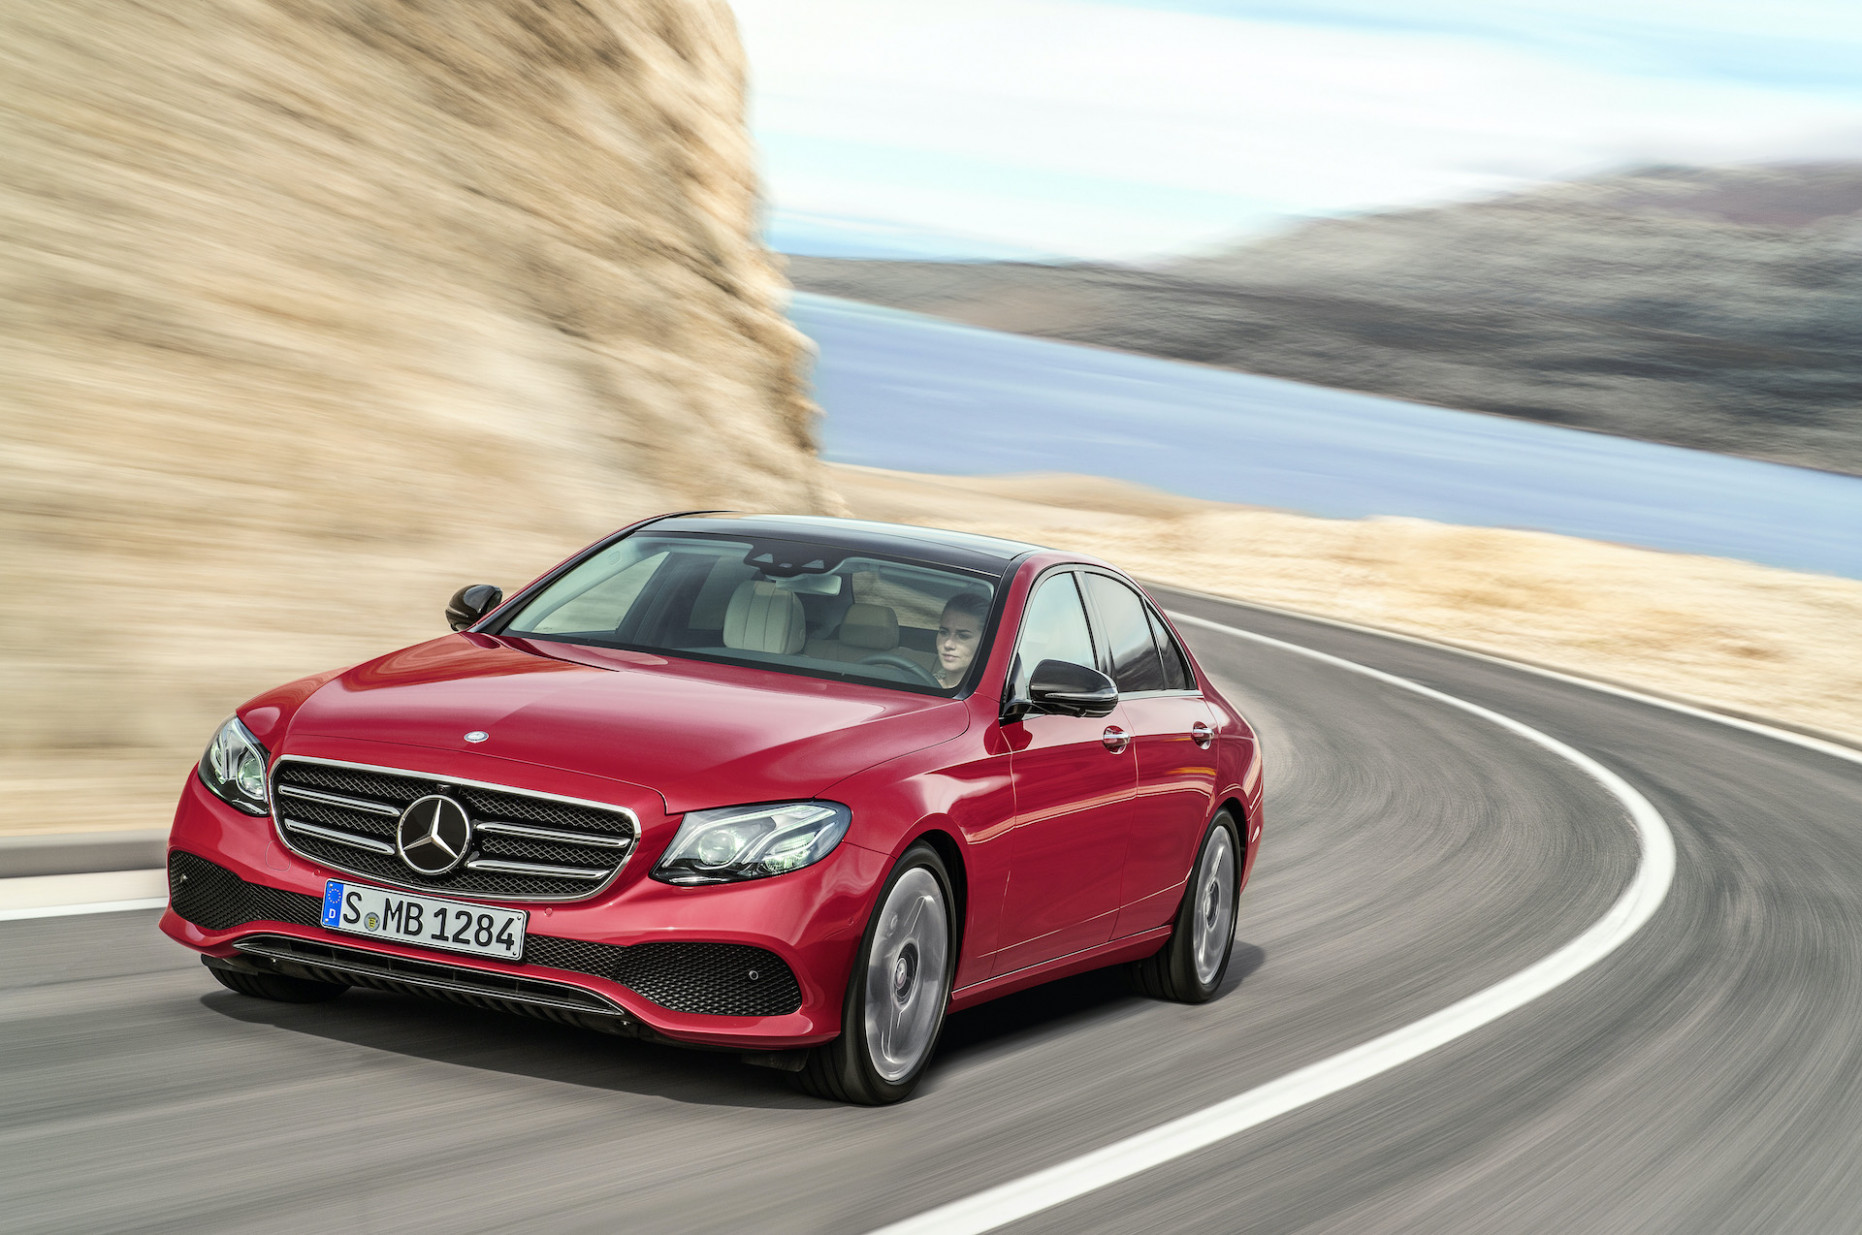 7 Mercedes-Benz E Class Review, Ratings, Specs, Prices, and ..